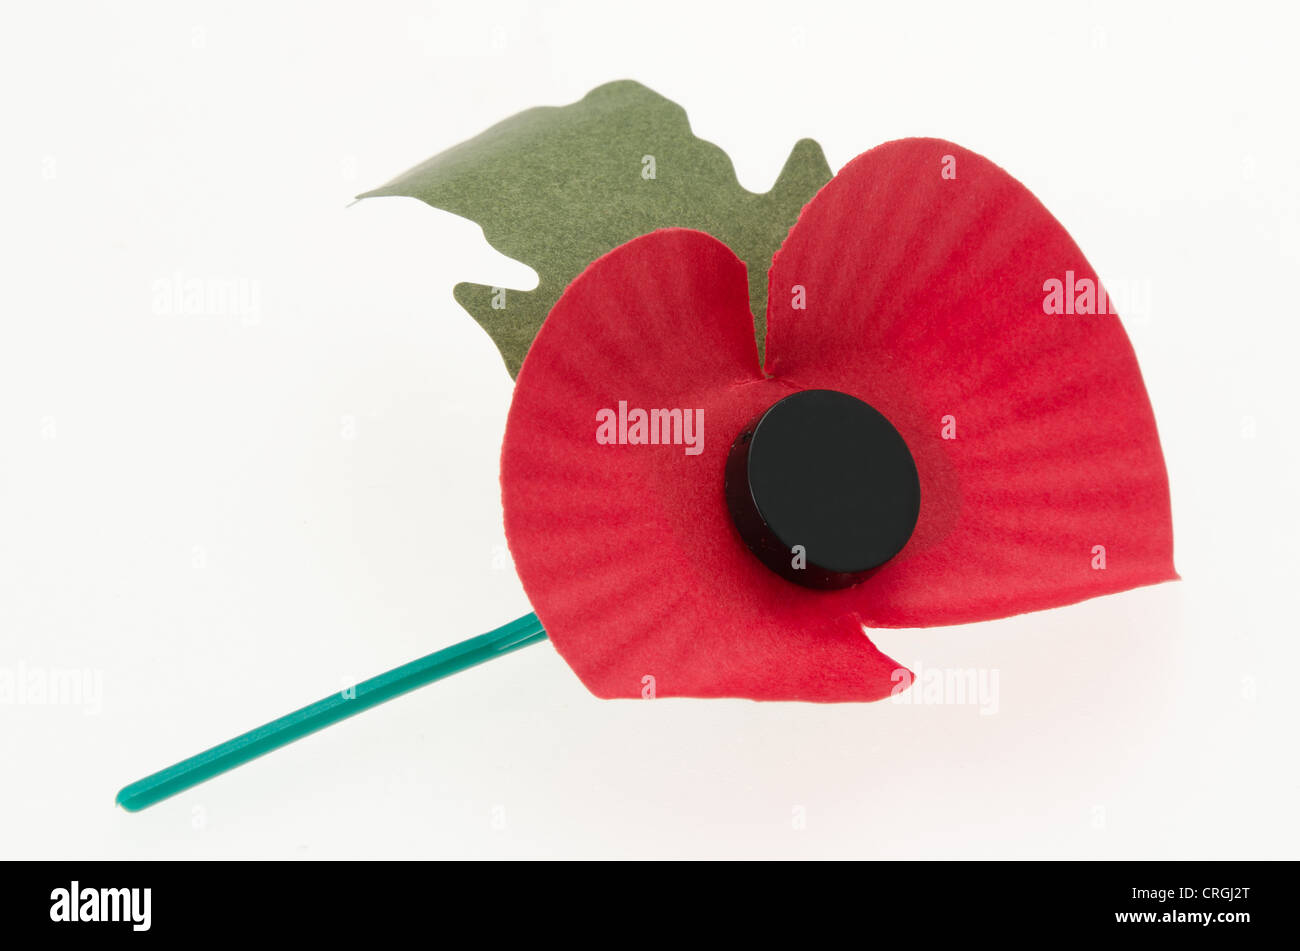 Worn Remembrance day poppy lying on its side - Stock Image